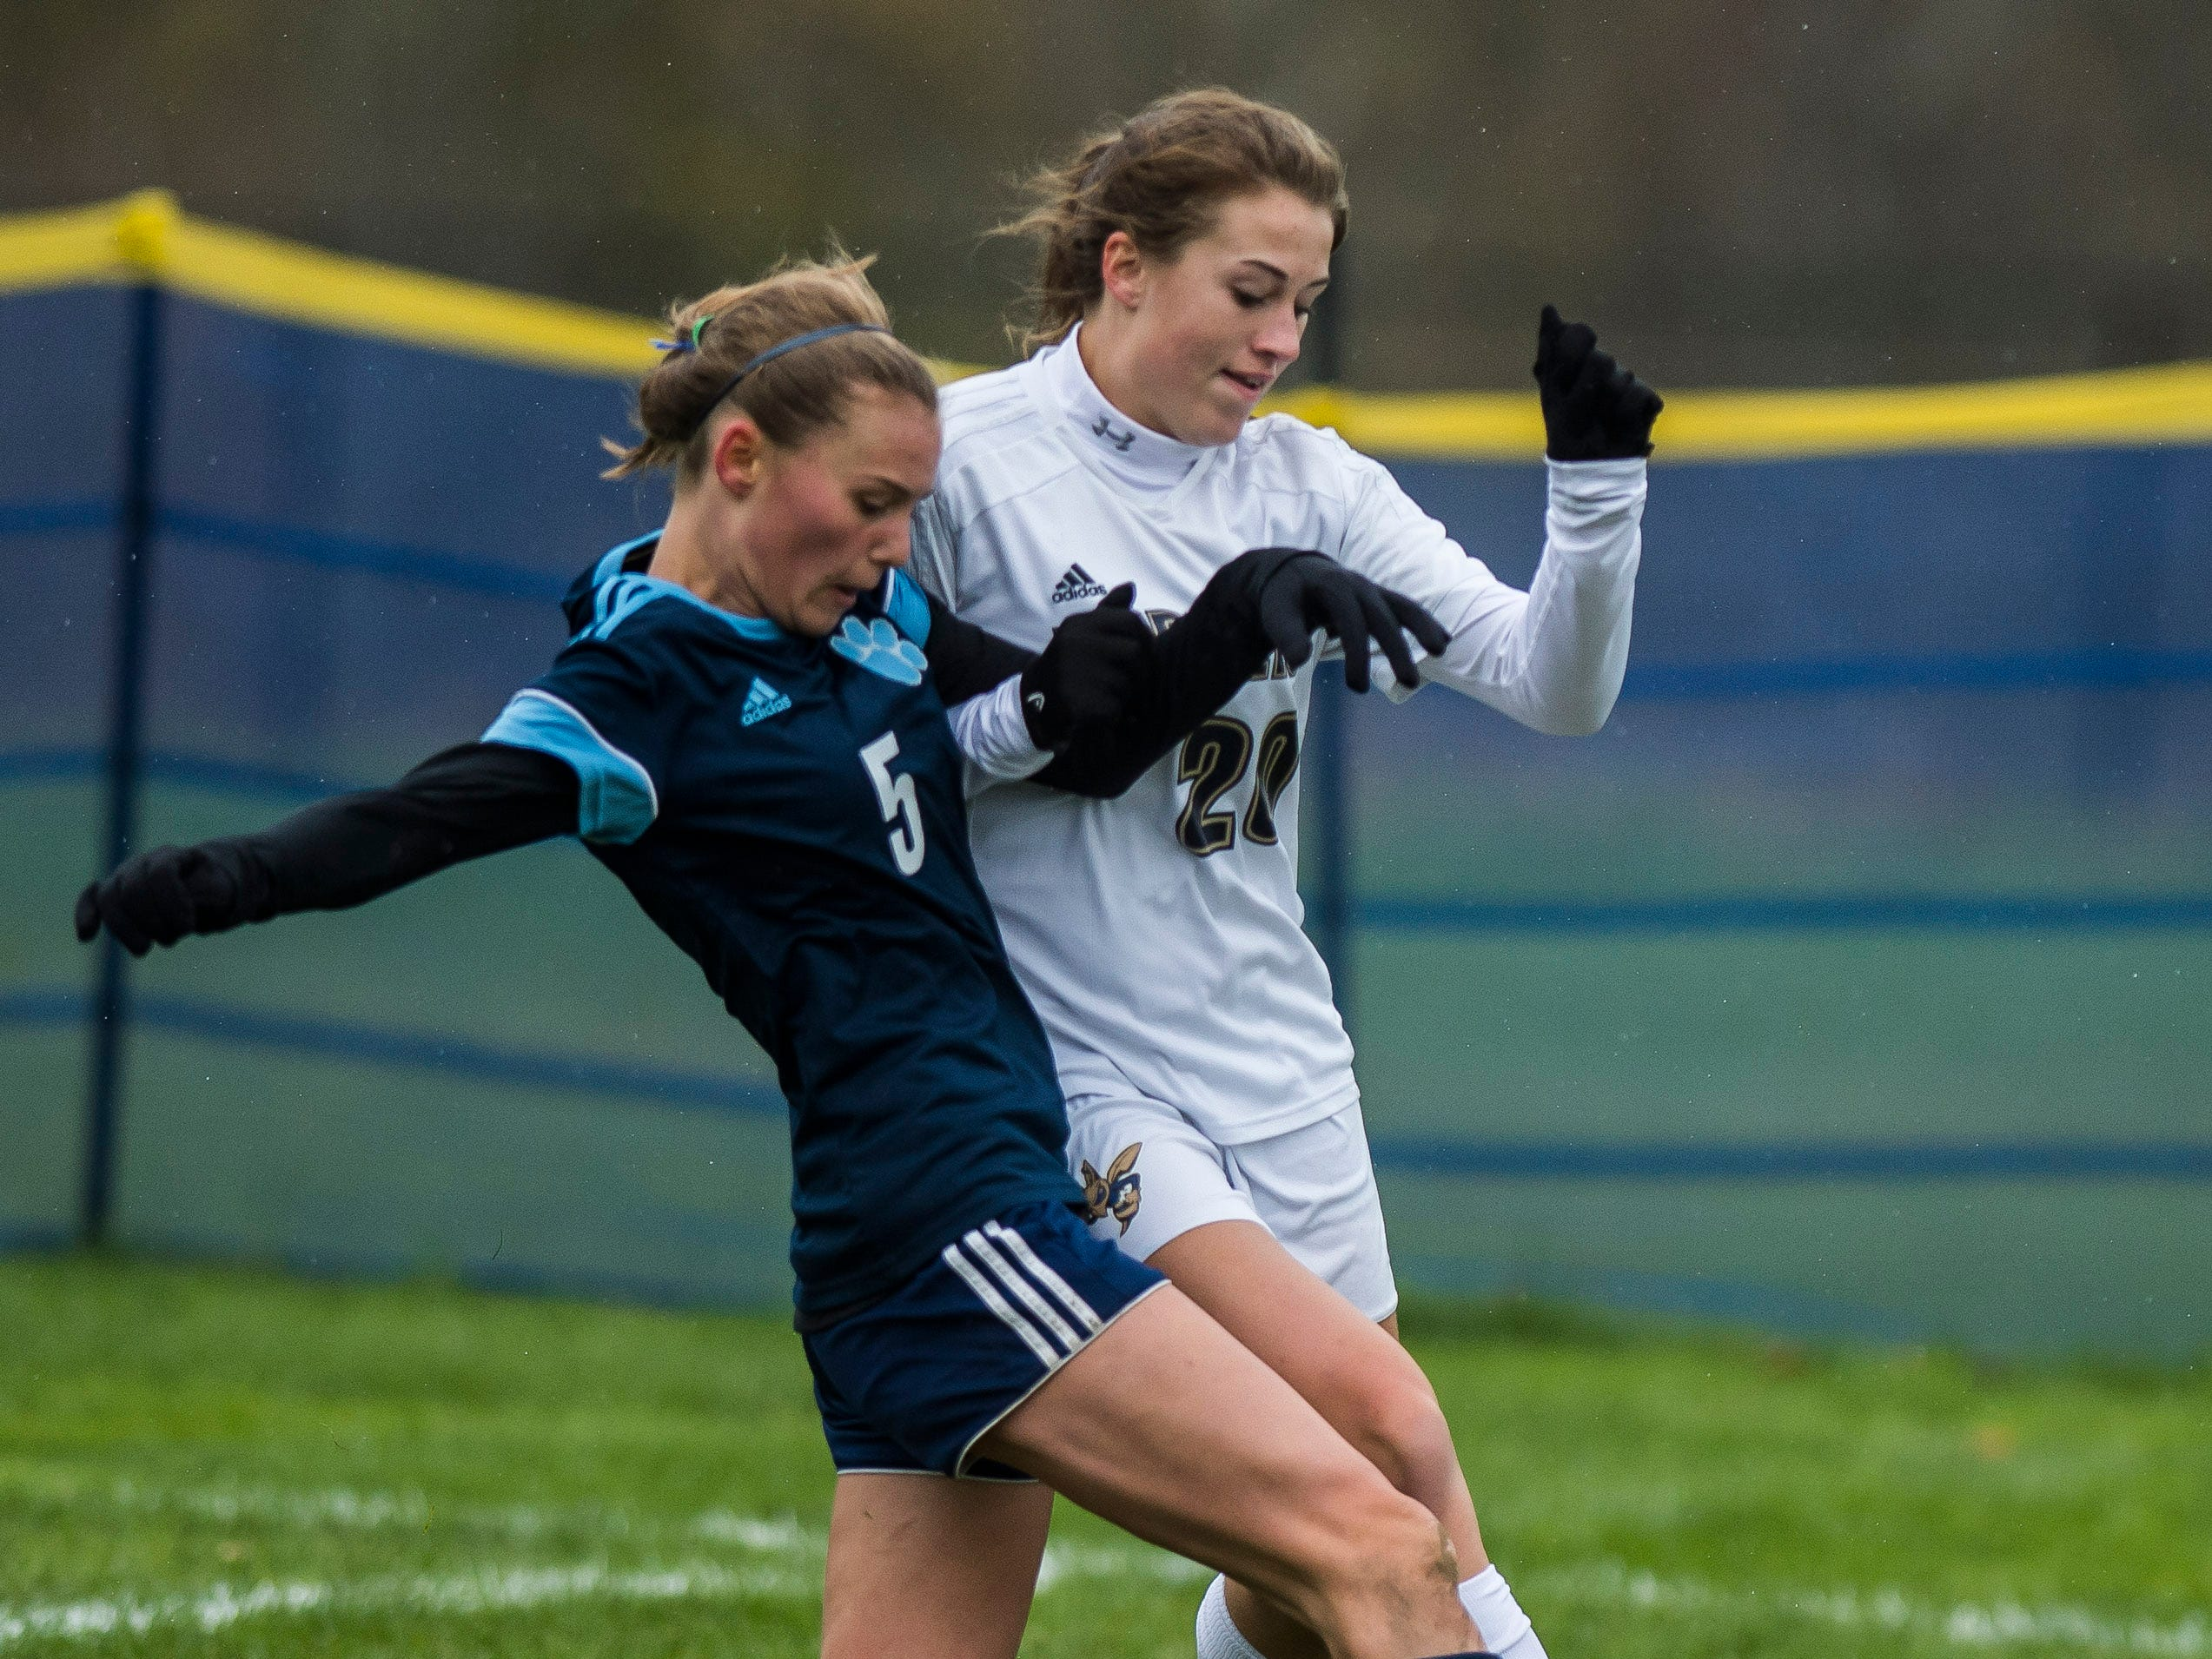 MMU #5 Skye Fitzhugh and Essex #22 Huntyr Poulin battle for the ball during their quarter-final game in Jericho on Saturday, Oct. 27, 2018, that went into double overtime and shootout. Essex took the penalty kick contest to win, 4-1.